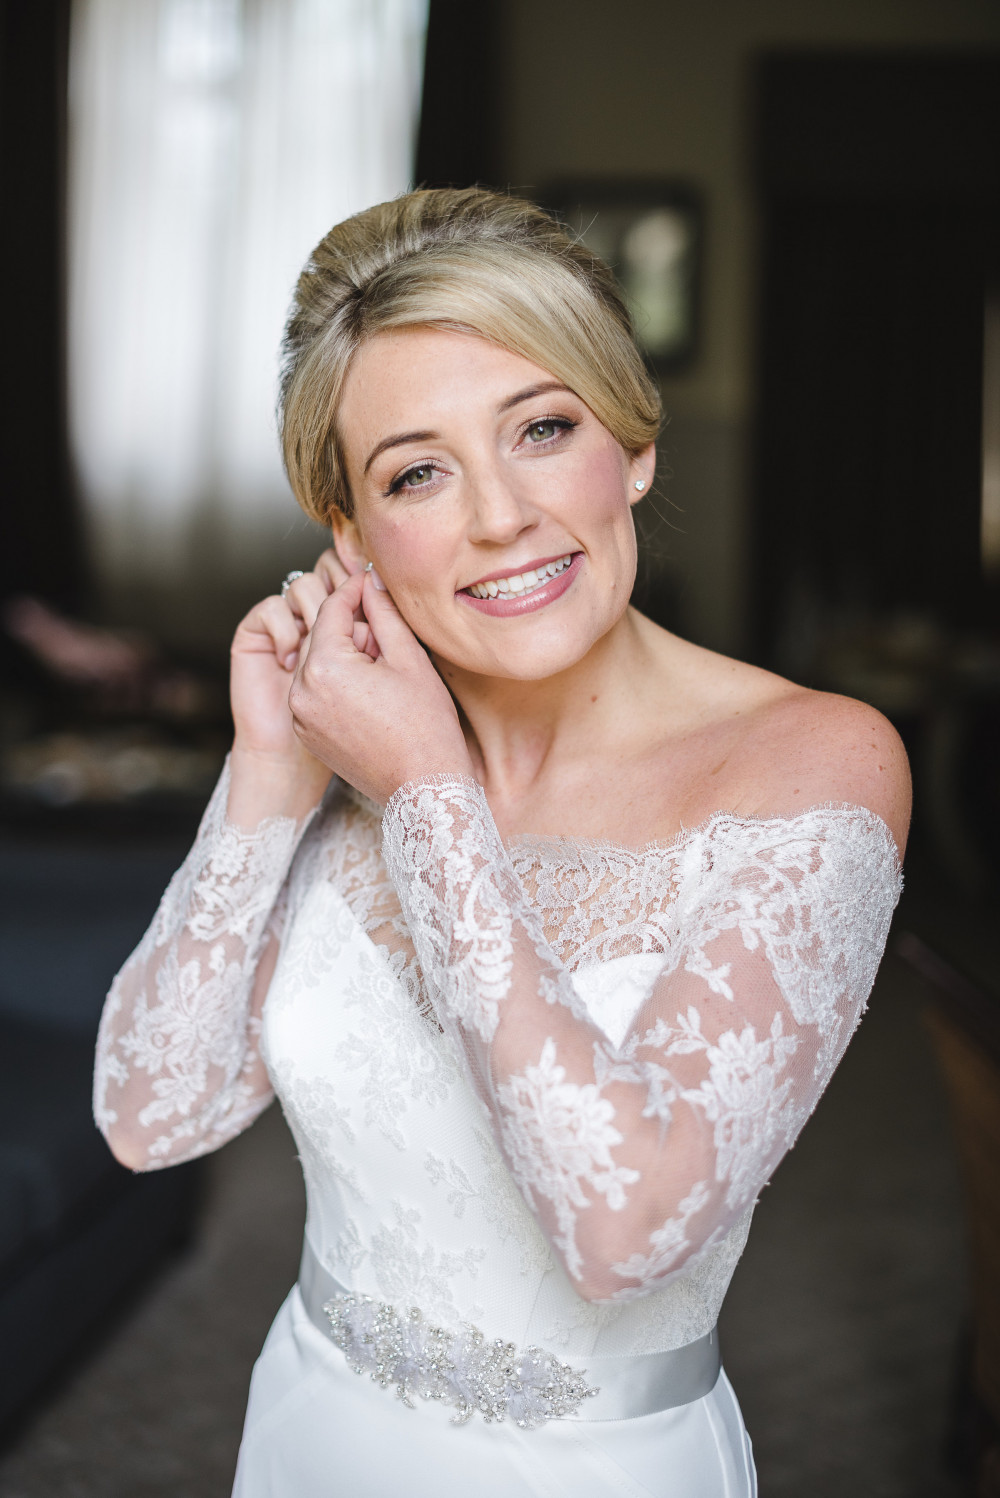 Beautiful Bride Lauren at The Slaughters Manor House in the stunning Cotswolds. - Make Me Bridal Artist: Niki Lawrence Professional Makeup Artist. Photography by: nicola and glen . #bridalmakeup #weddingmakeup #cotswoldsmakeupartist #cotswoldswedding